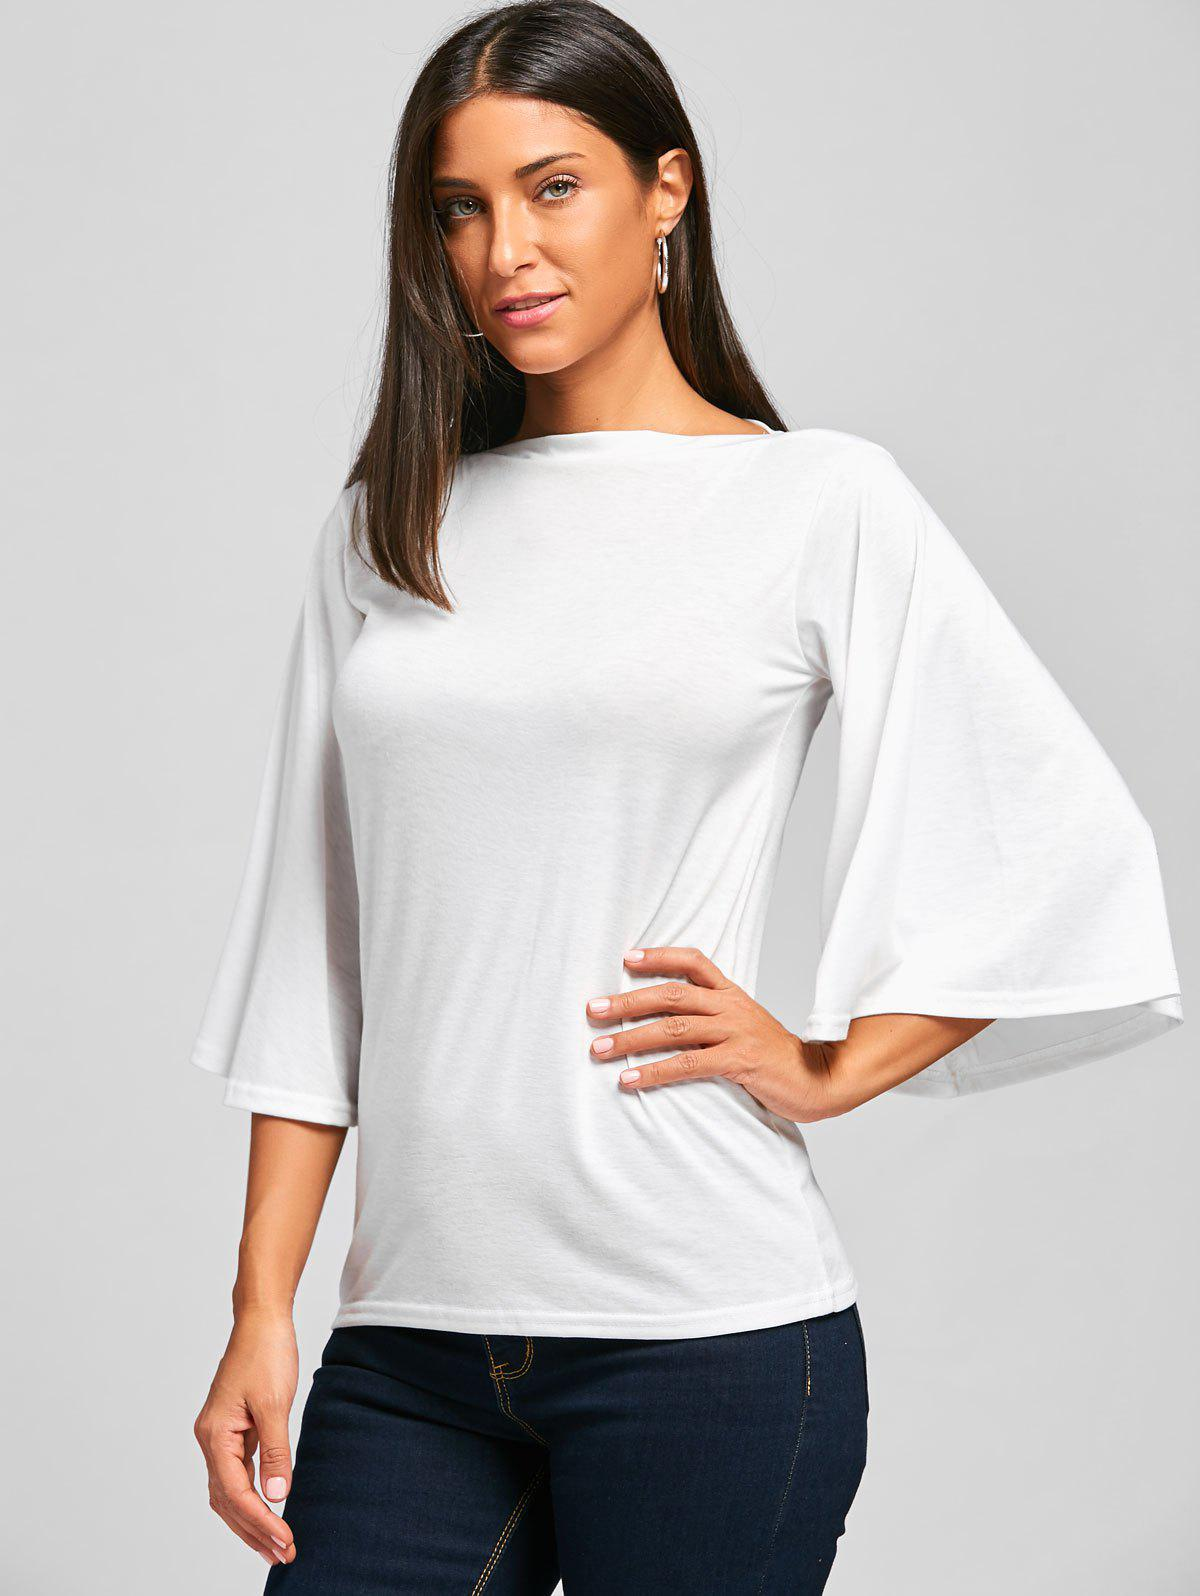 2018 Bell Sleeve Tunic T Shirt White S In Tees T Shirts